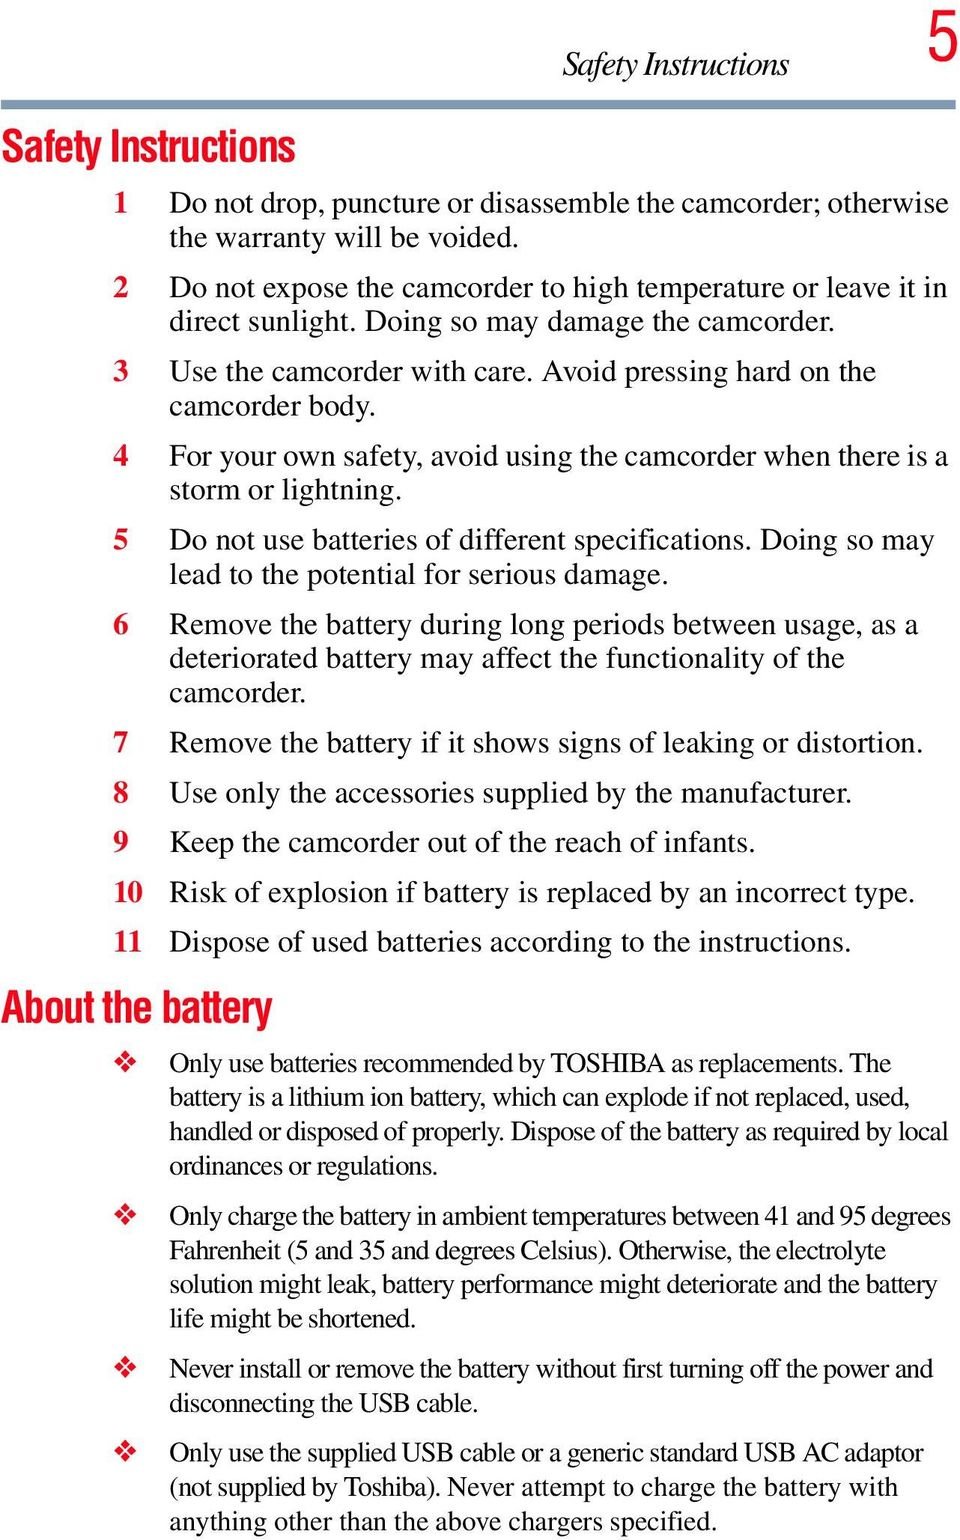 4 For your own safety, avoid using the camcorder when there is a storm or lightning. 5 Do not use batteries of different specifications. Doing so may lead to the potential for serious damage.